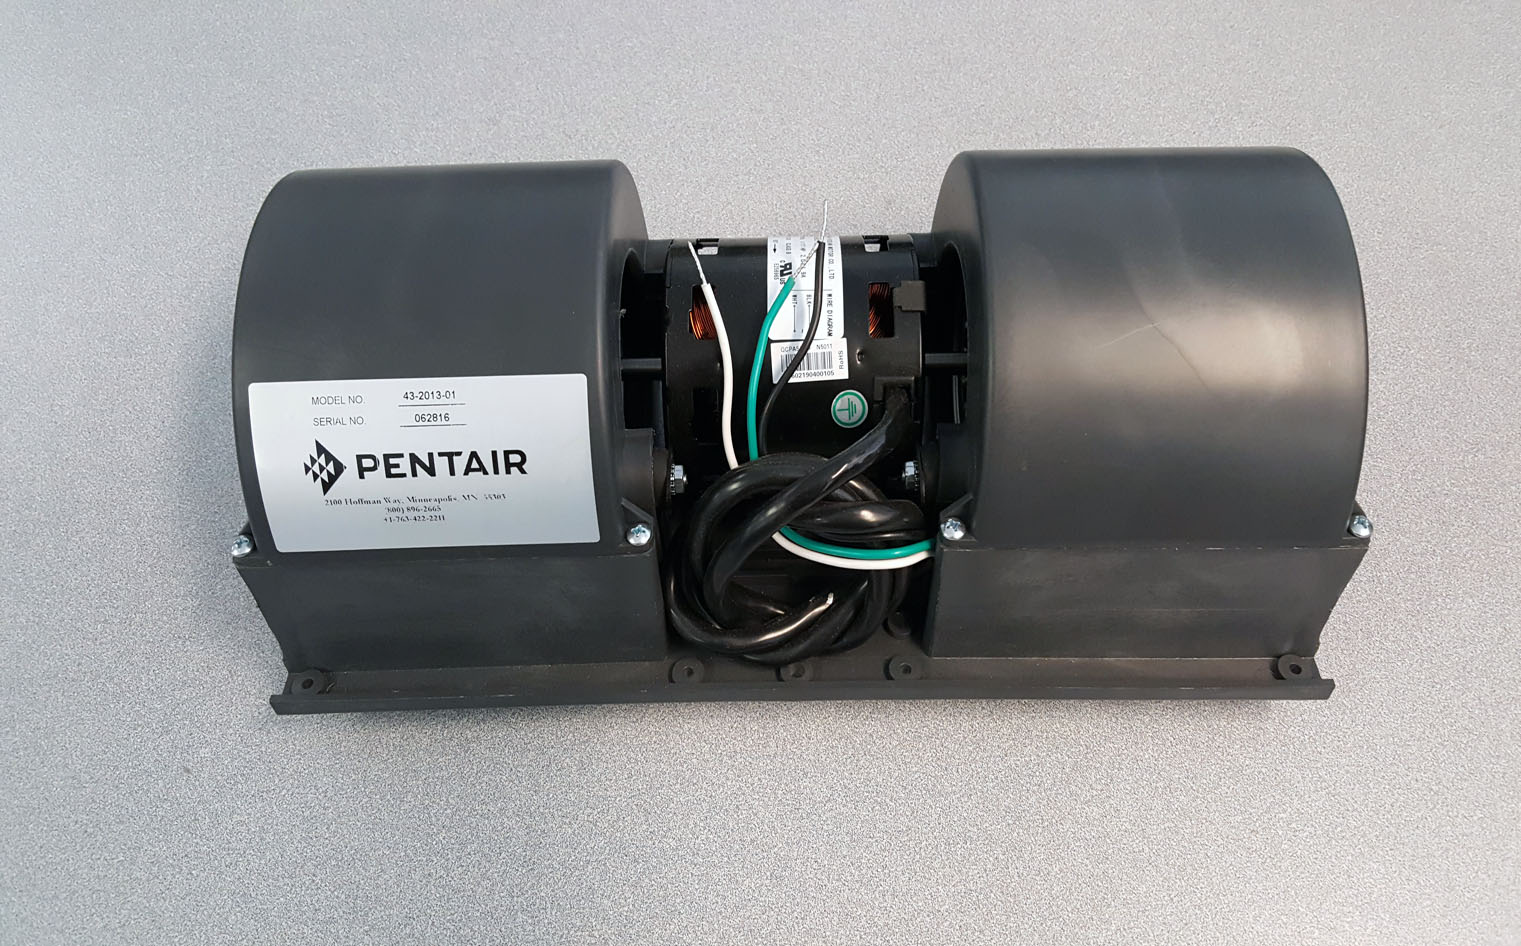 Pentair, Hoffman, McLean 43201301 Blower Assembly, 115 Volt